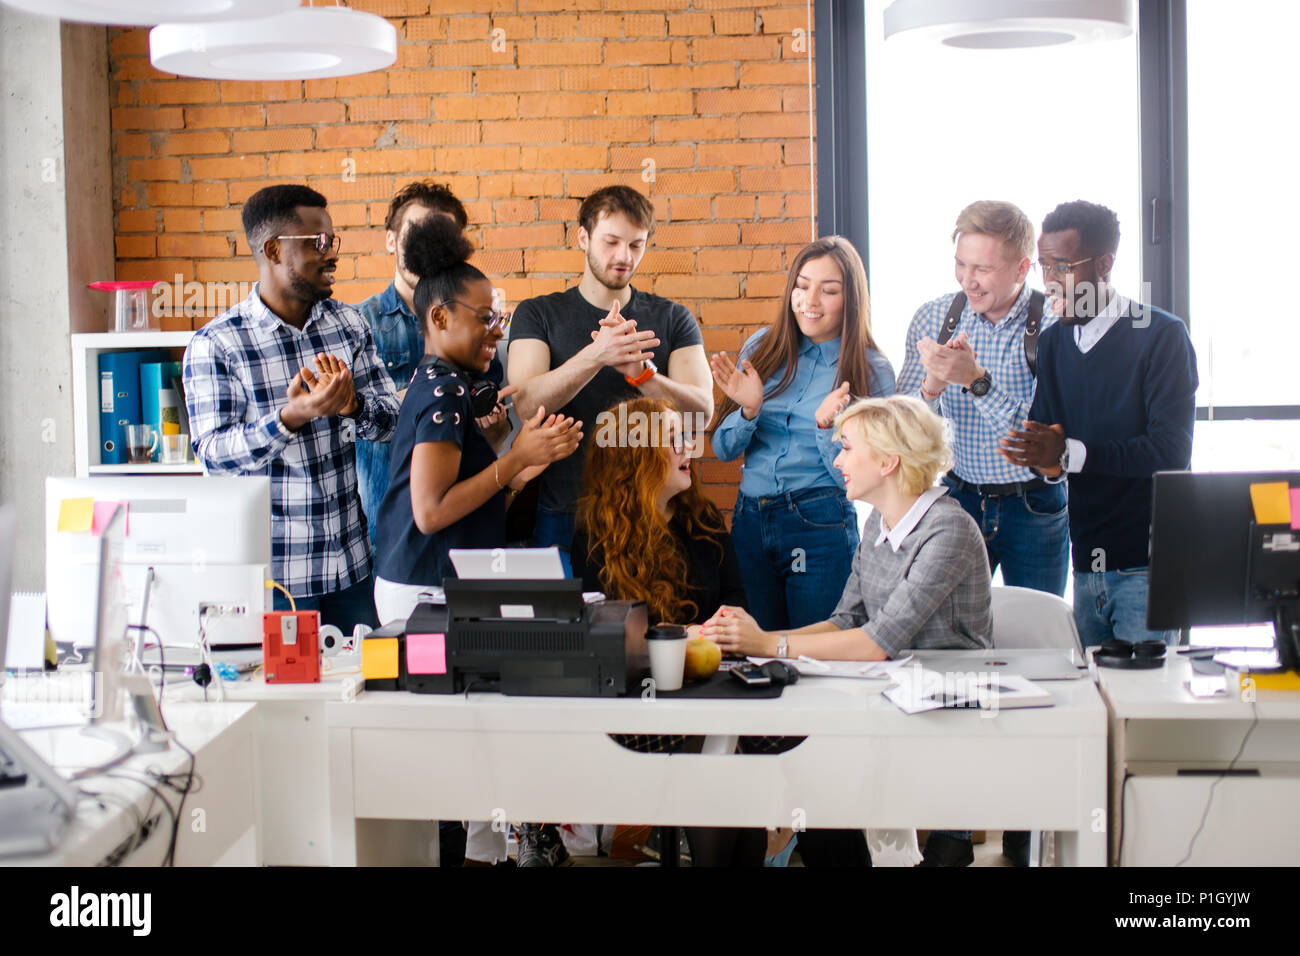 office workers are warmly greeting and welcoming new partner - Stock Image